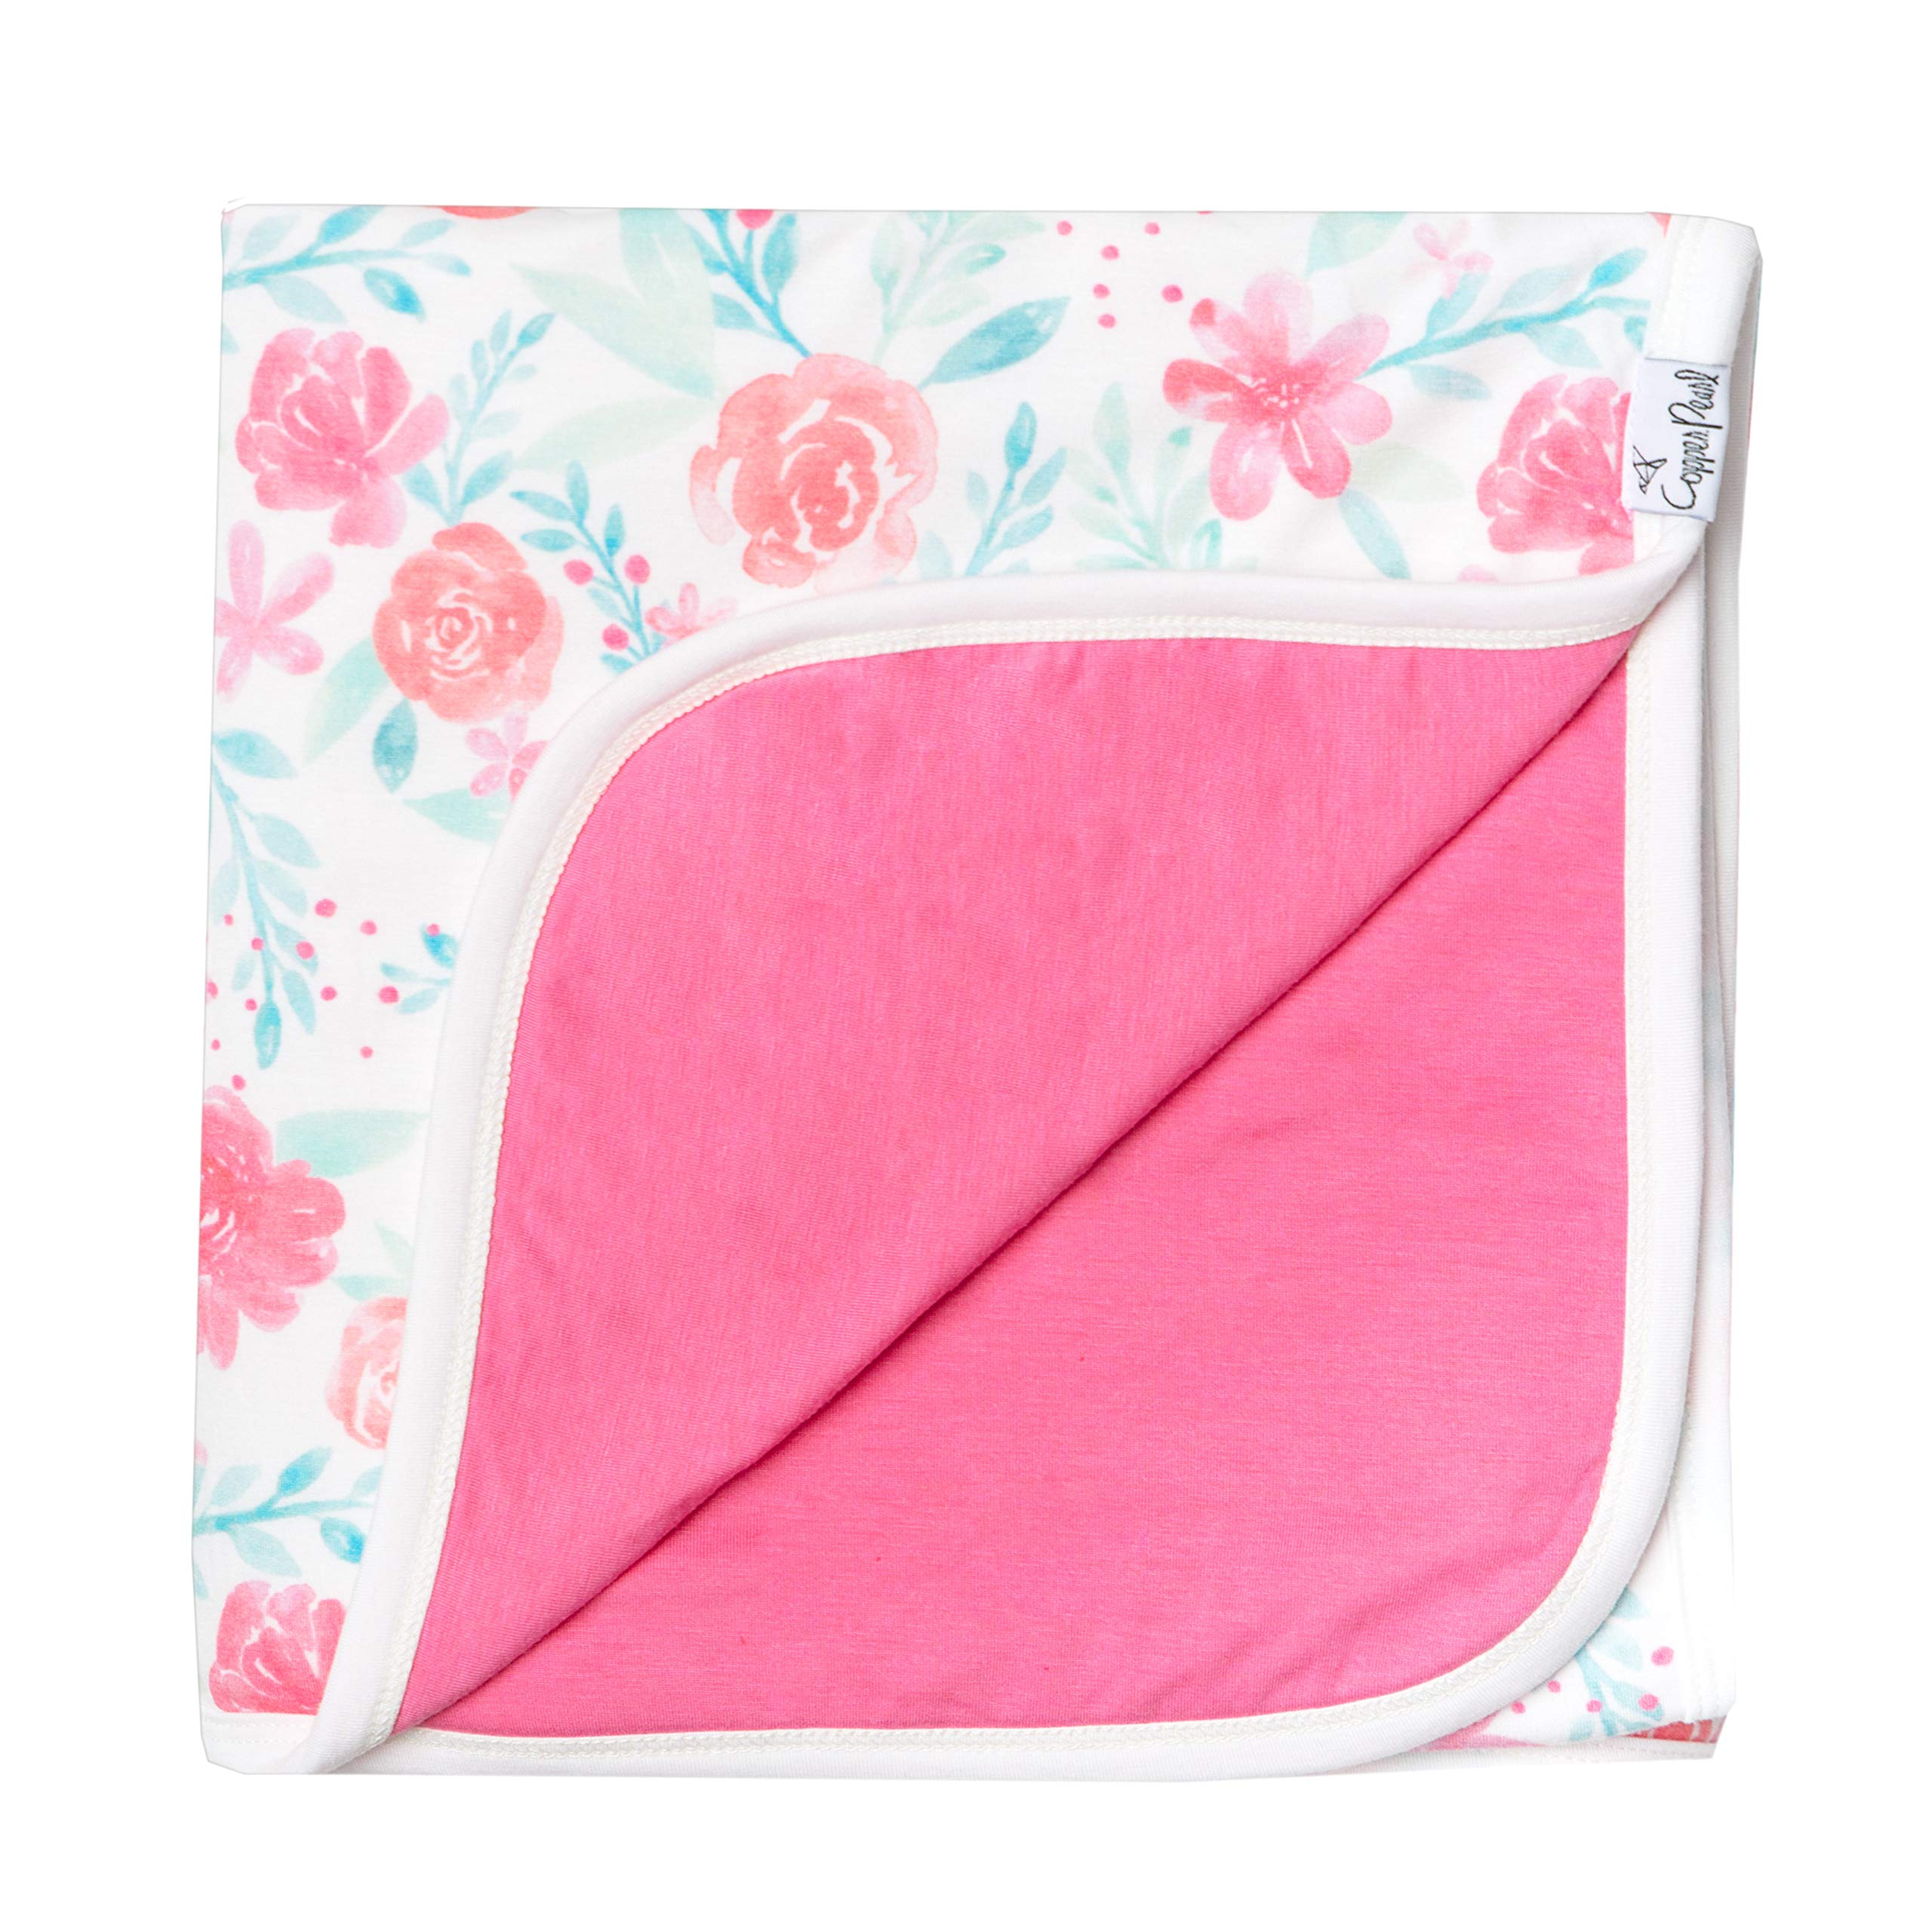 Large Premium Knit Baby 3 Layer Stretchy Quilt Blanket Floral''June'' by Copper Pearl